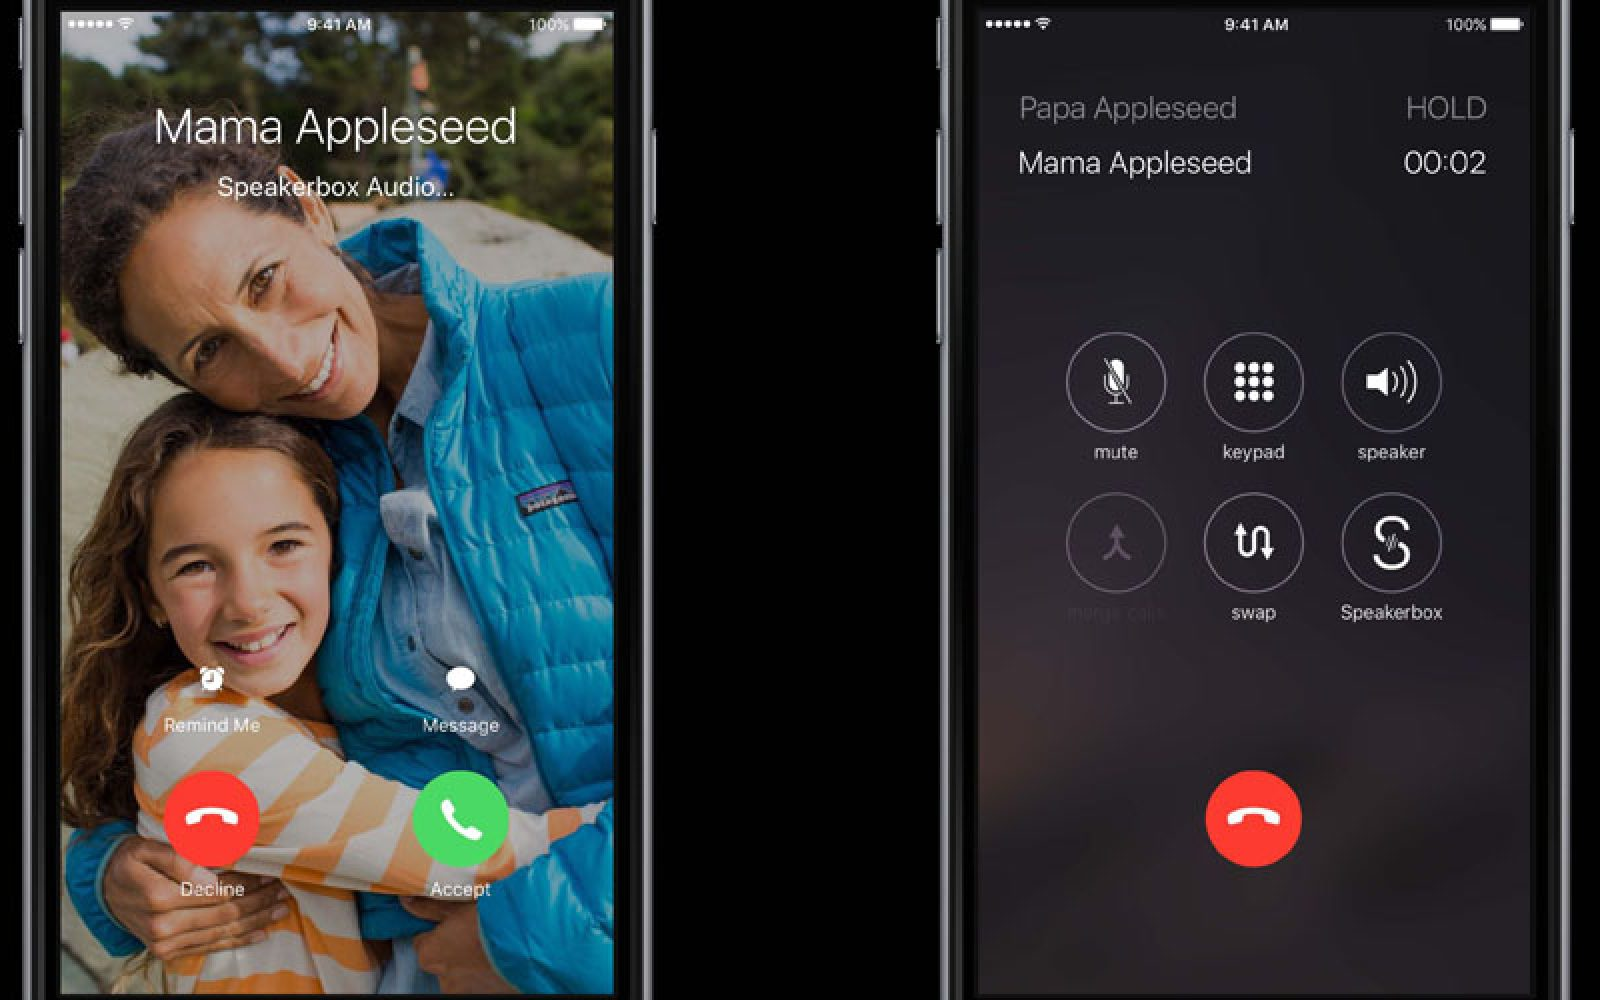 iPhone sends call logs to Apple servers even when iCloud backup